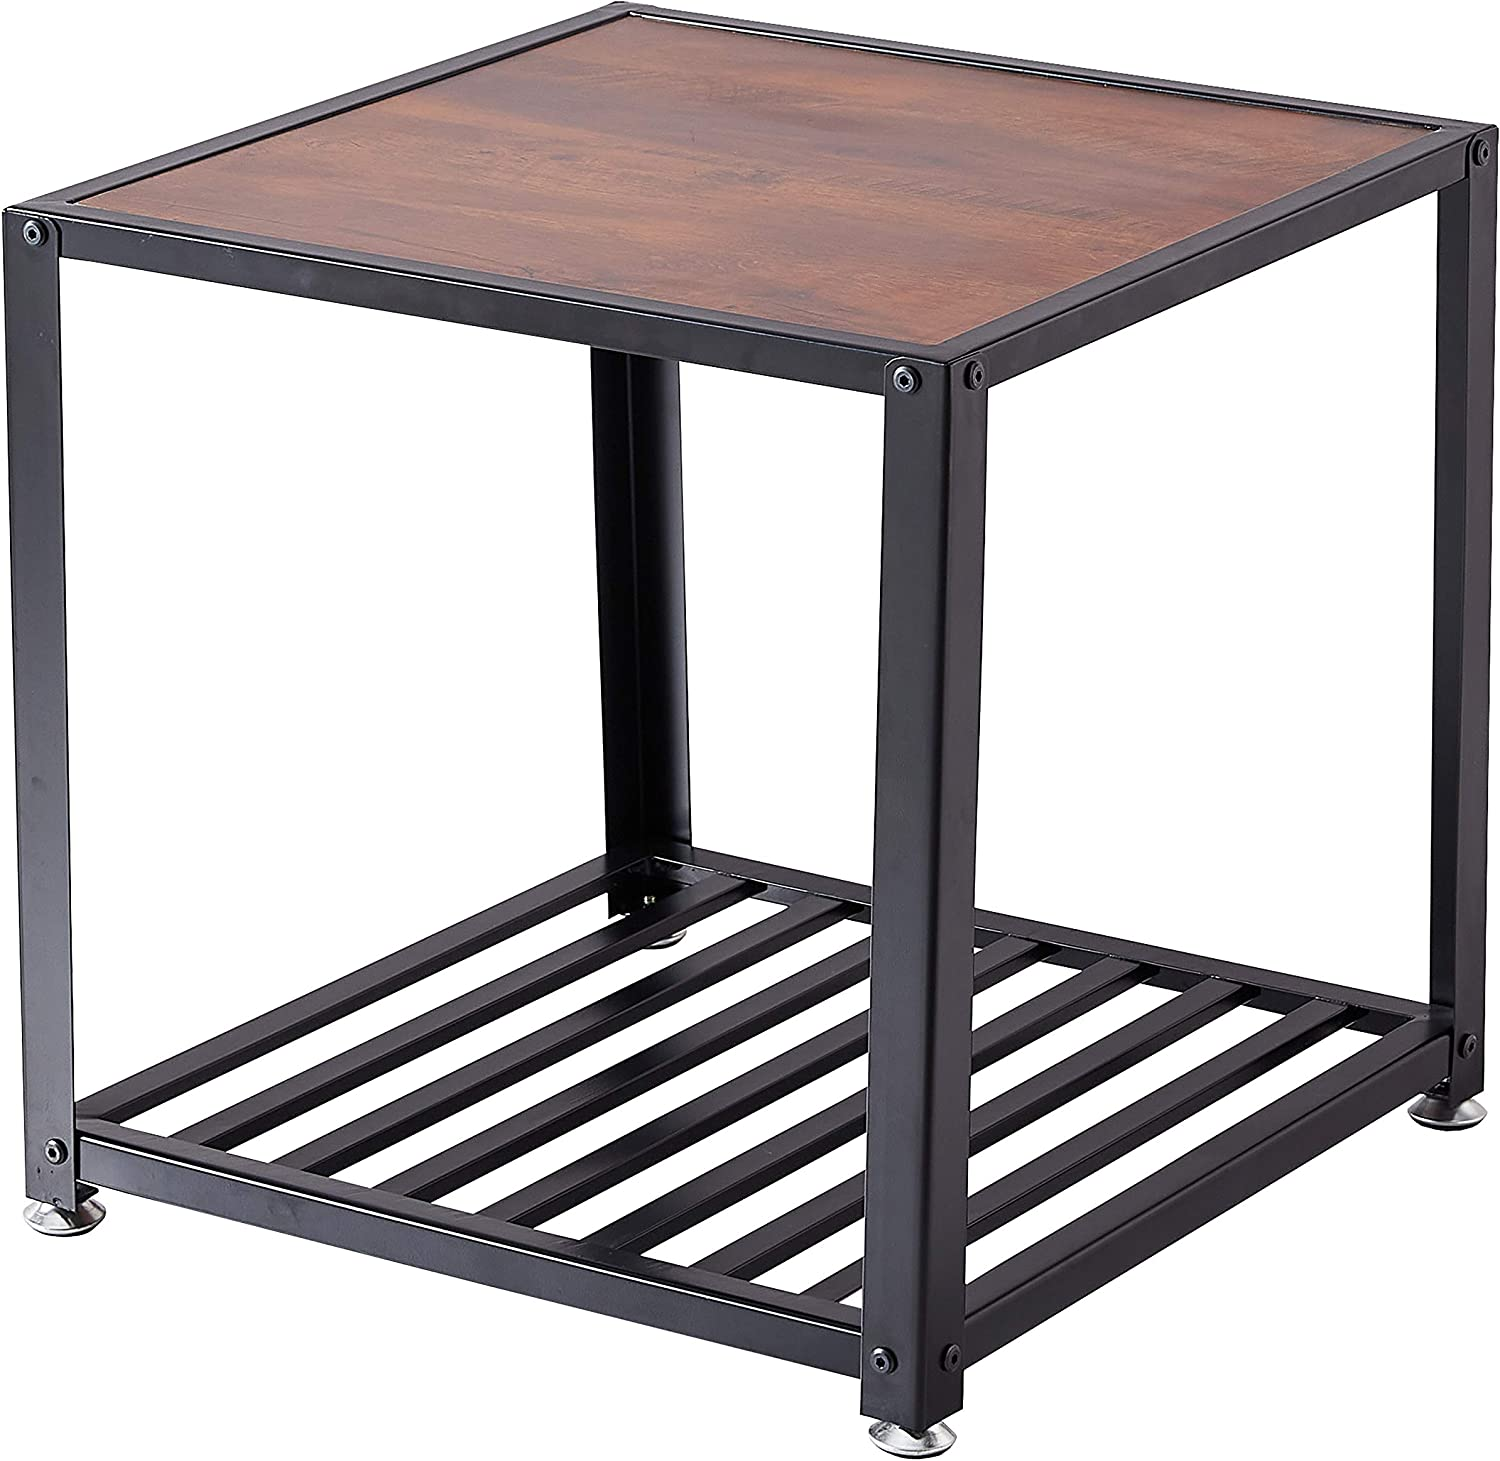 Loglus End Table/Side Table with Metal Shelf for Living Room, Office, Easy Assembly (ET002)